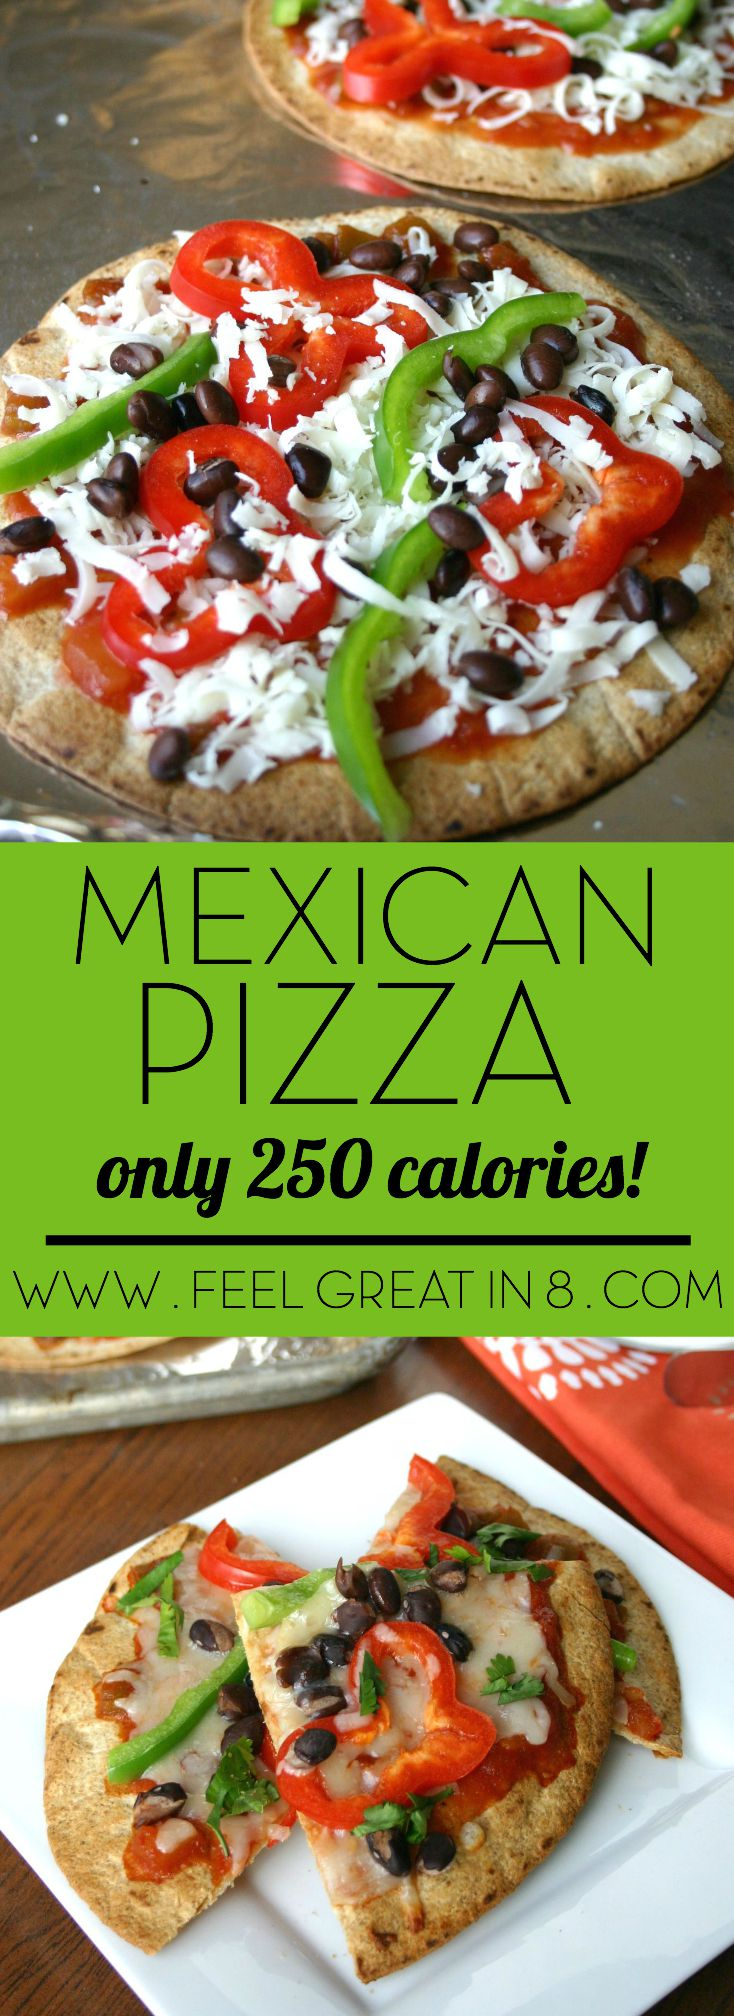 This healthy vegetarian Mexican Pizza is quick & easy to throw together and has only 250 calories in an entire pizza! Perfect for lunch or dinner! | Feel Great in 8 - Healthy Real Food Recipes